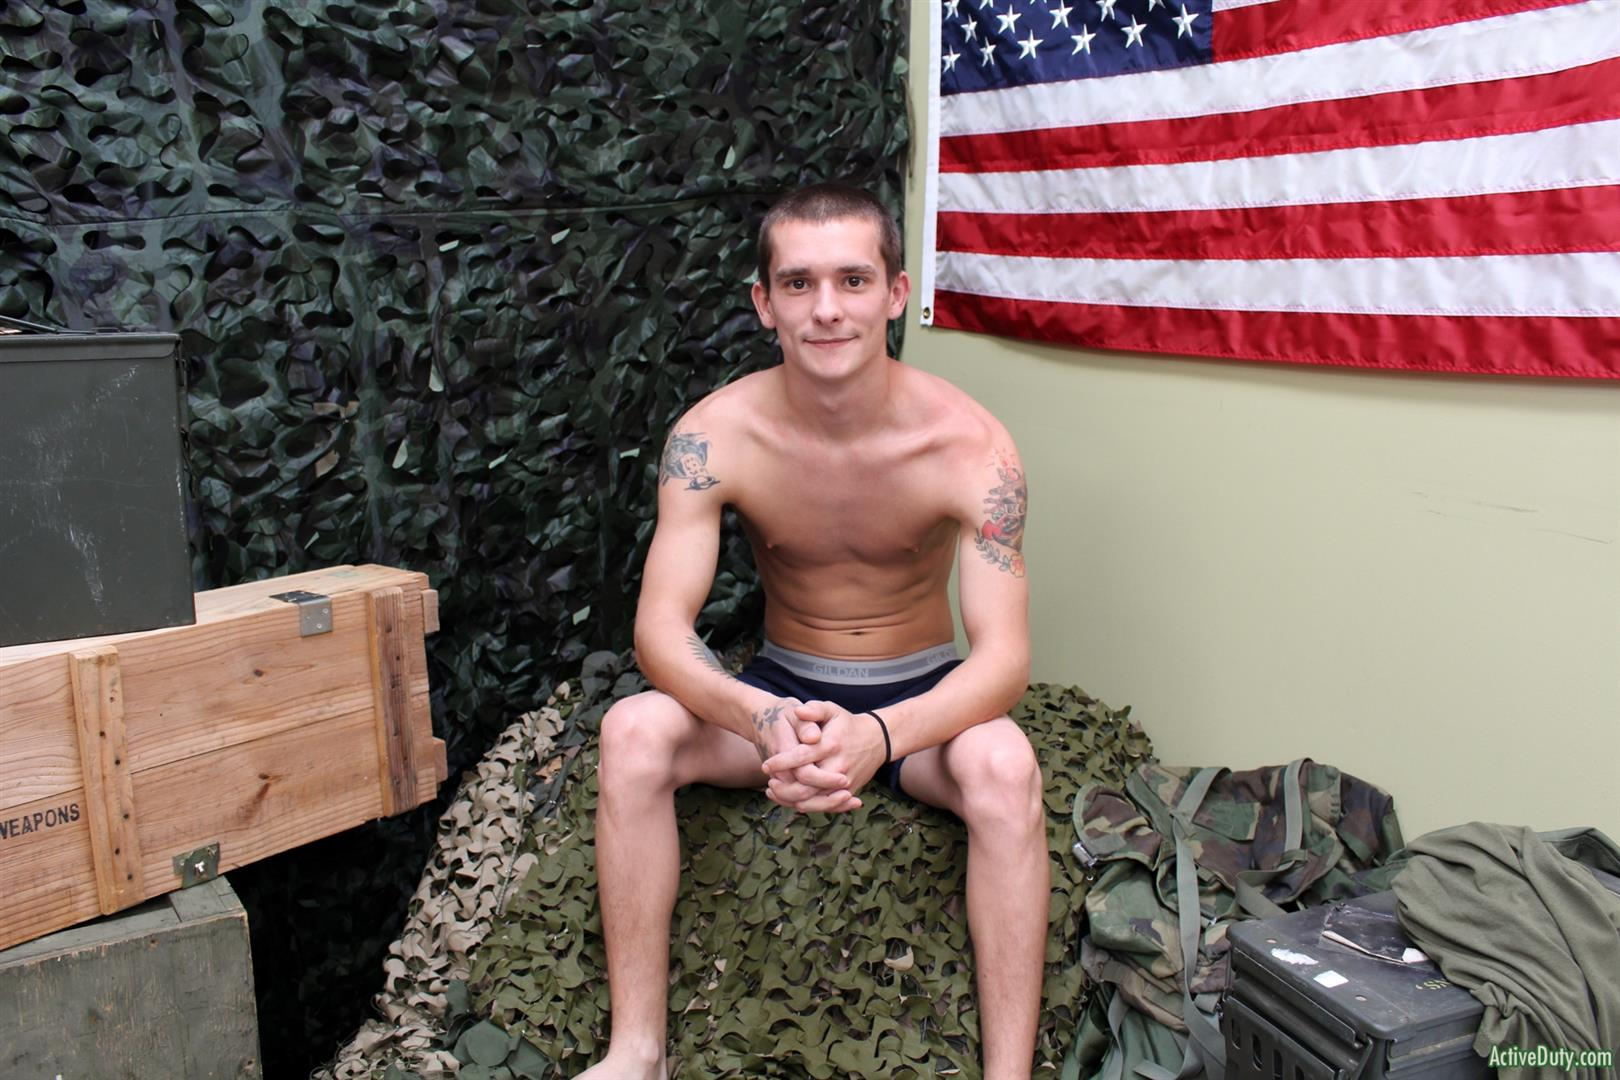 Active-Duty-Cole-Bantam-Naked-Army-Soldier-With-A-Big-Cock-Jerking-Off-15 Army Private Cole Bantam Stroking His Big Cock